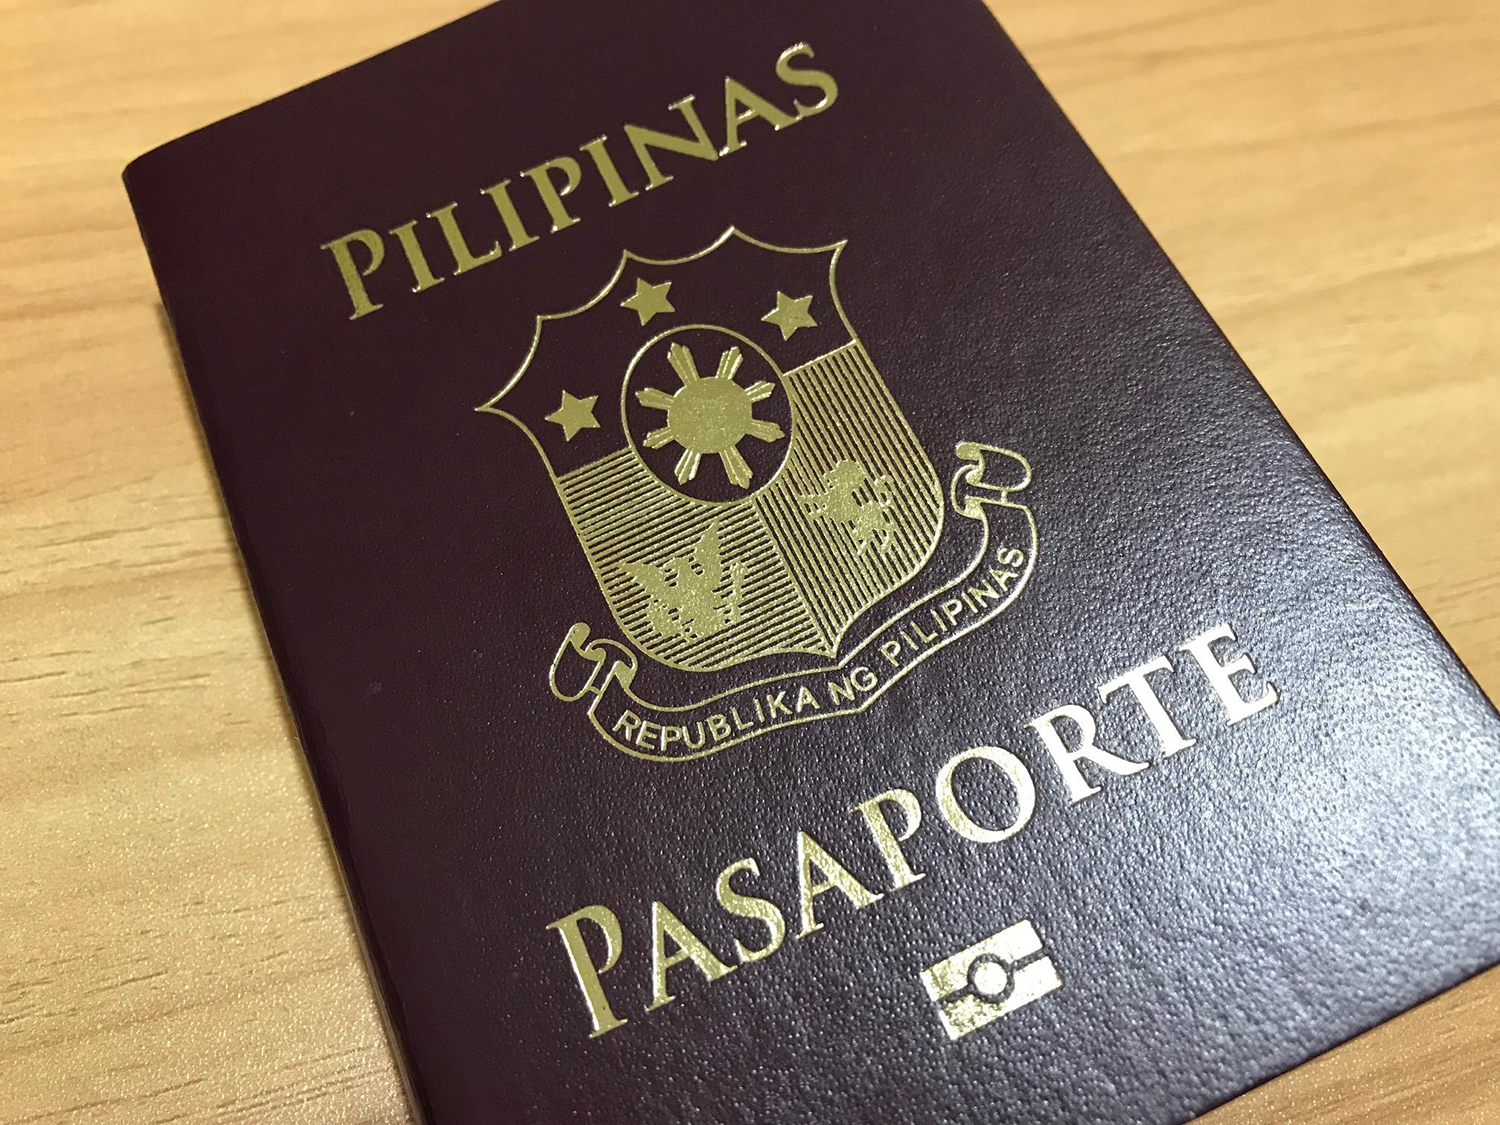 Philippine Passport In Qatar Available for Release